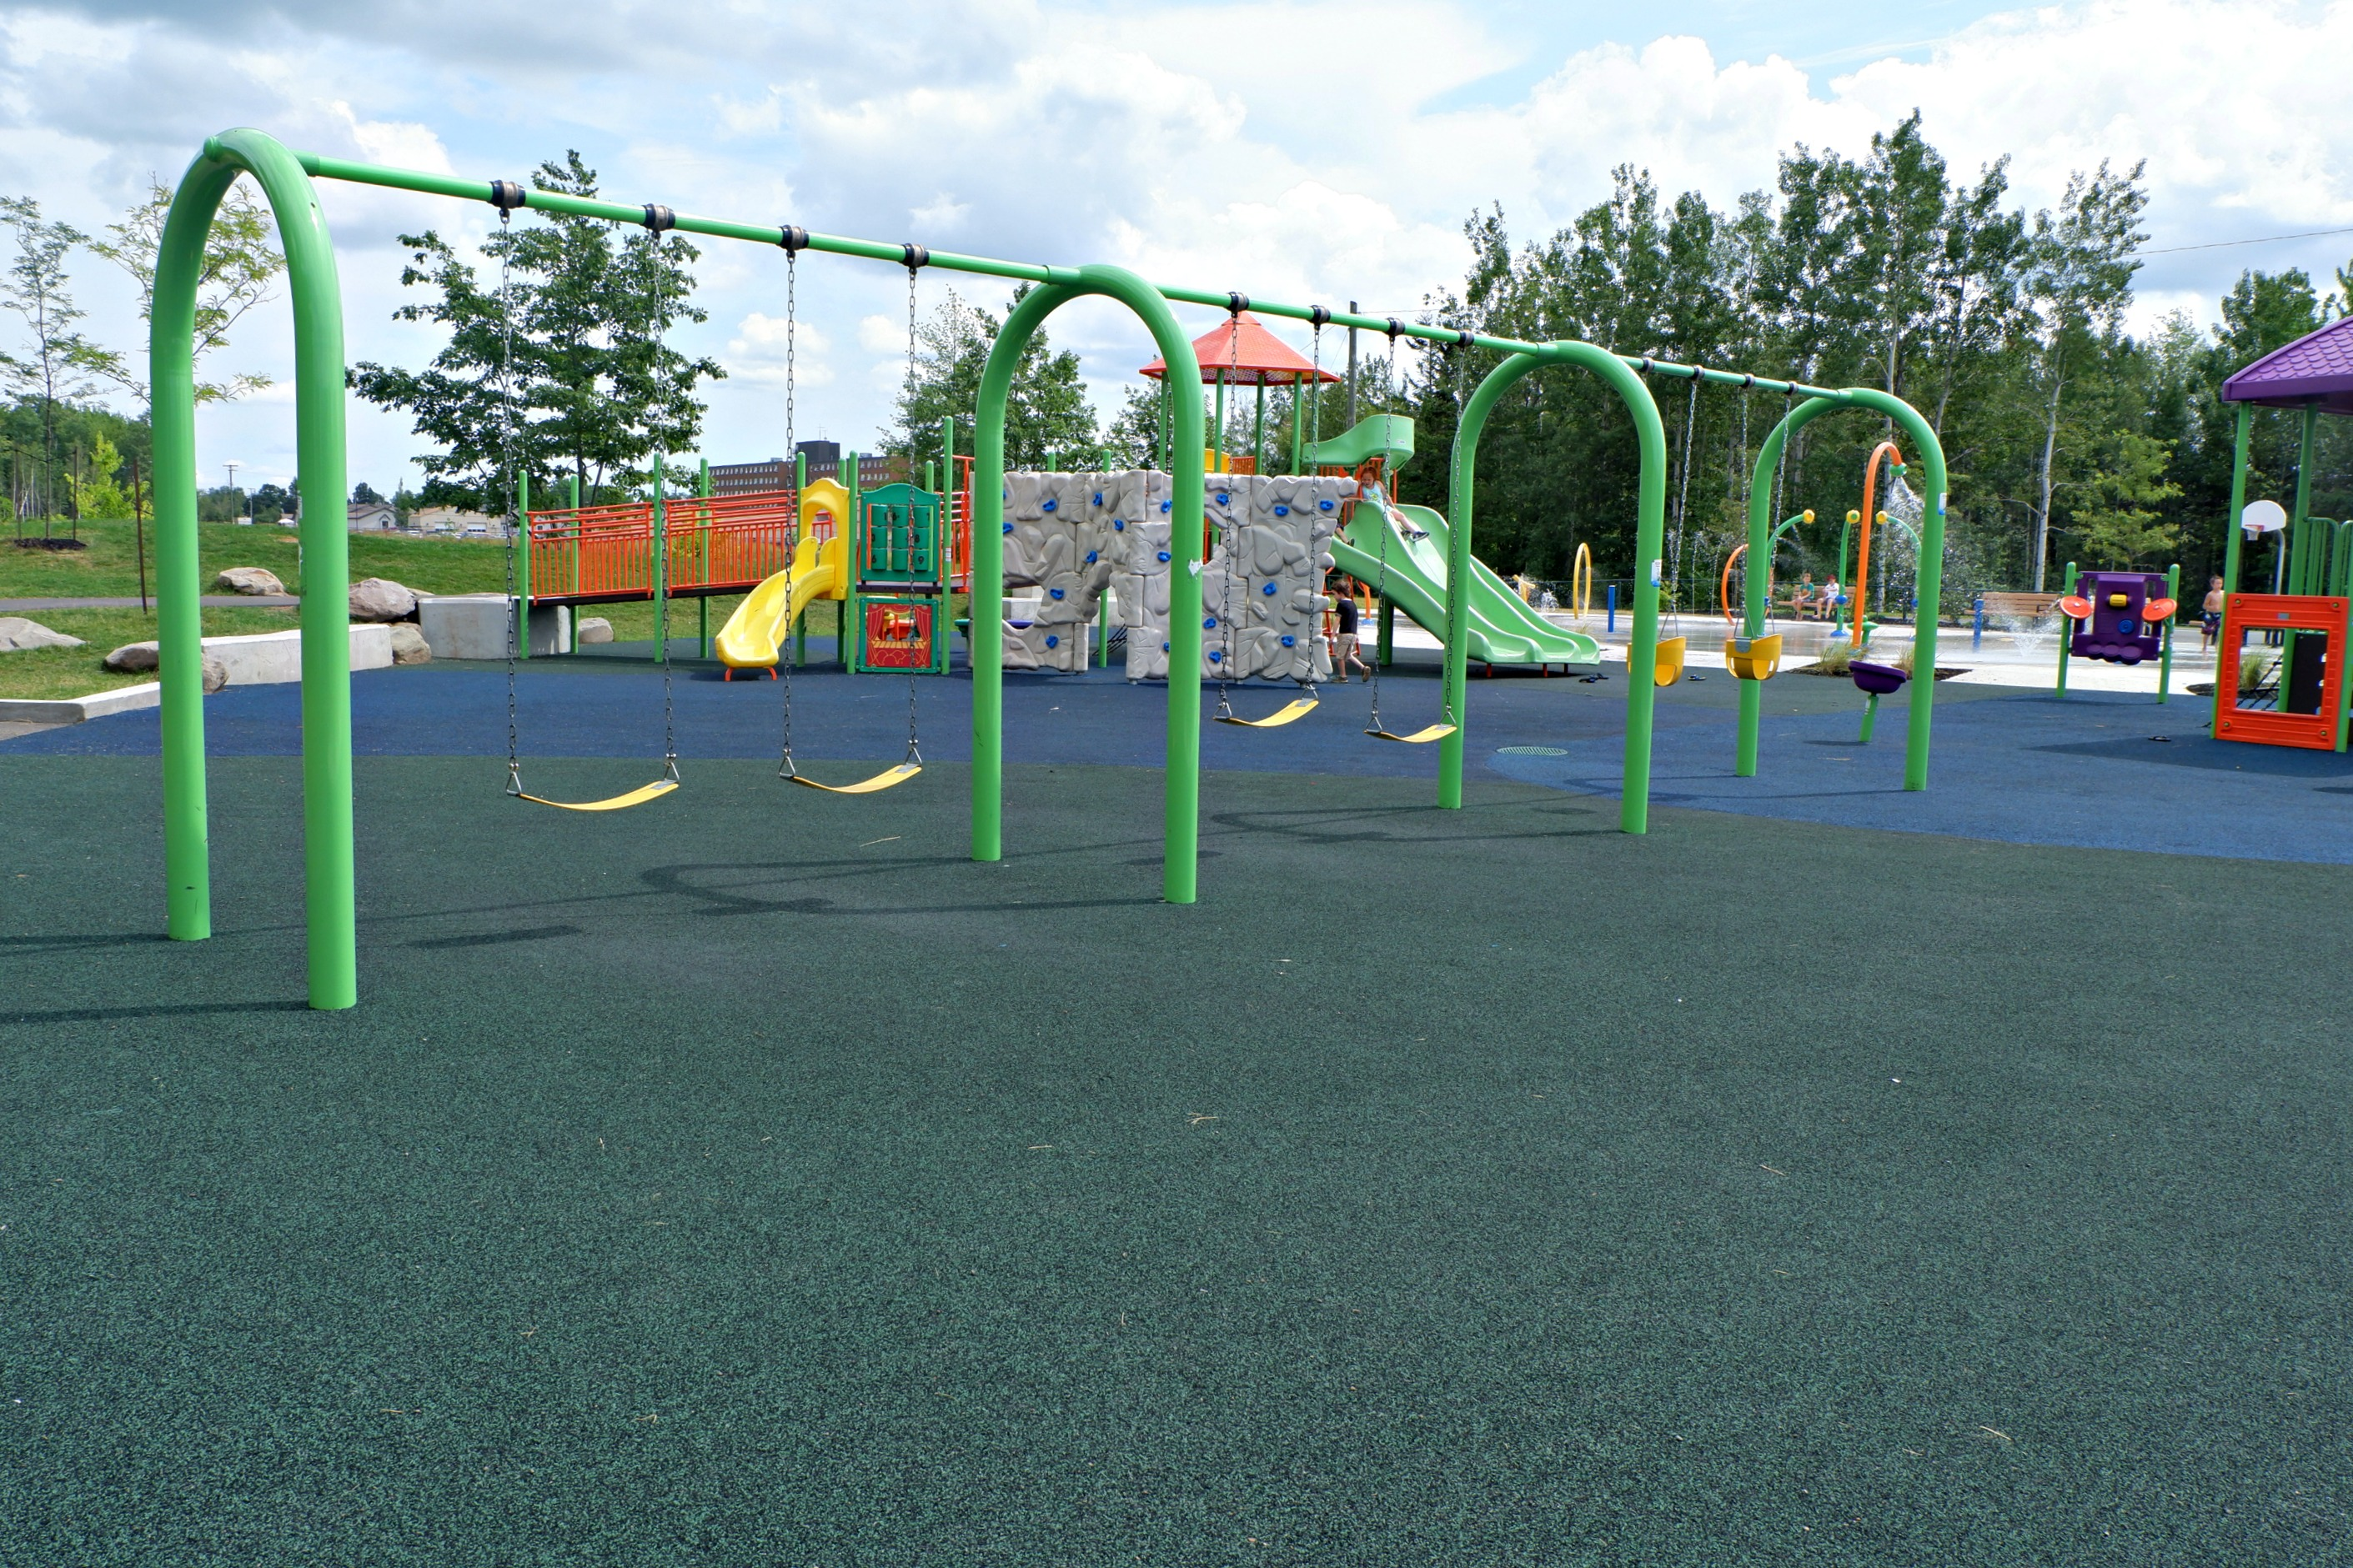 fairview knoll playground park moncton splash pad pickle planet near highway swings